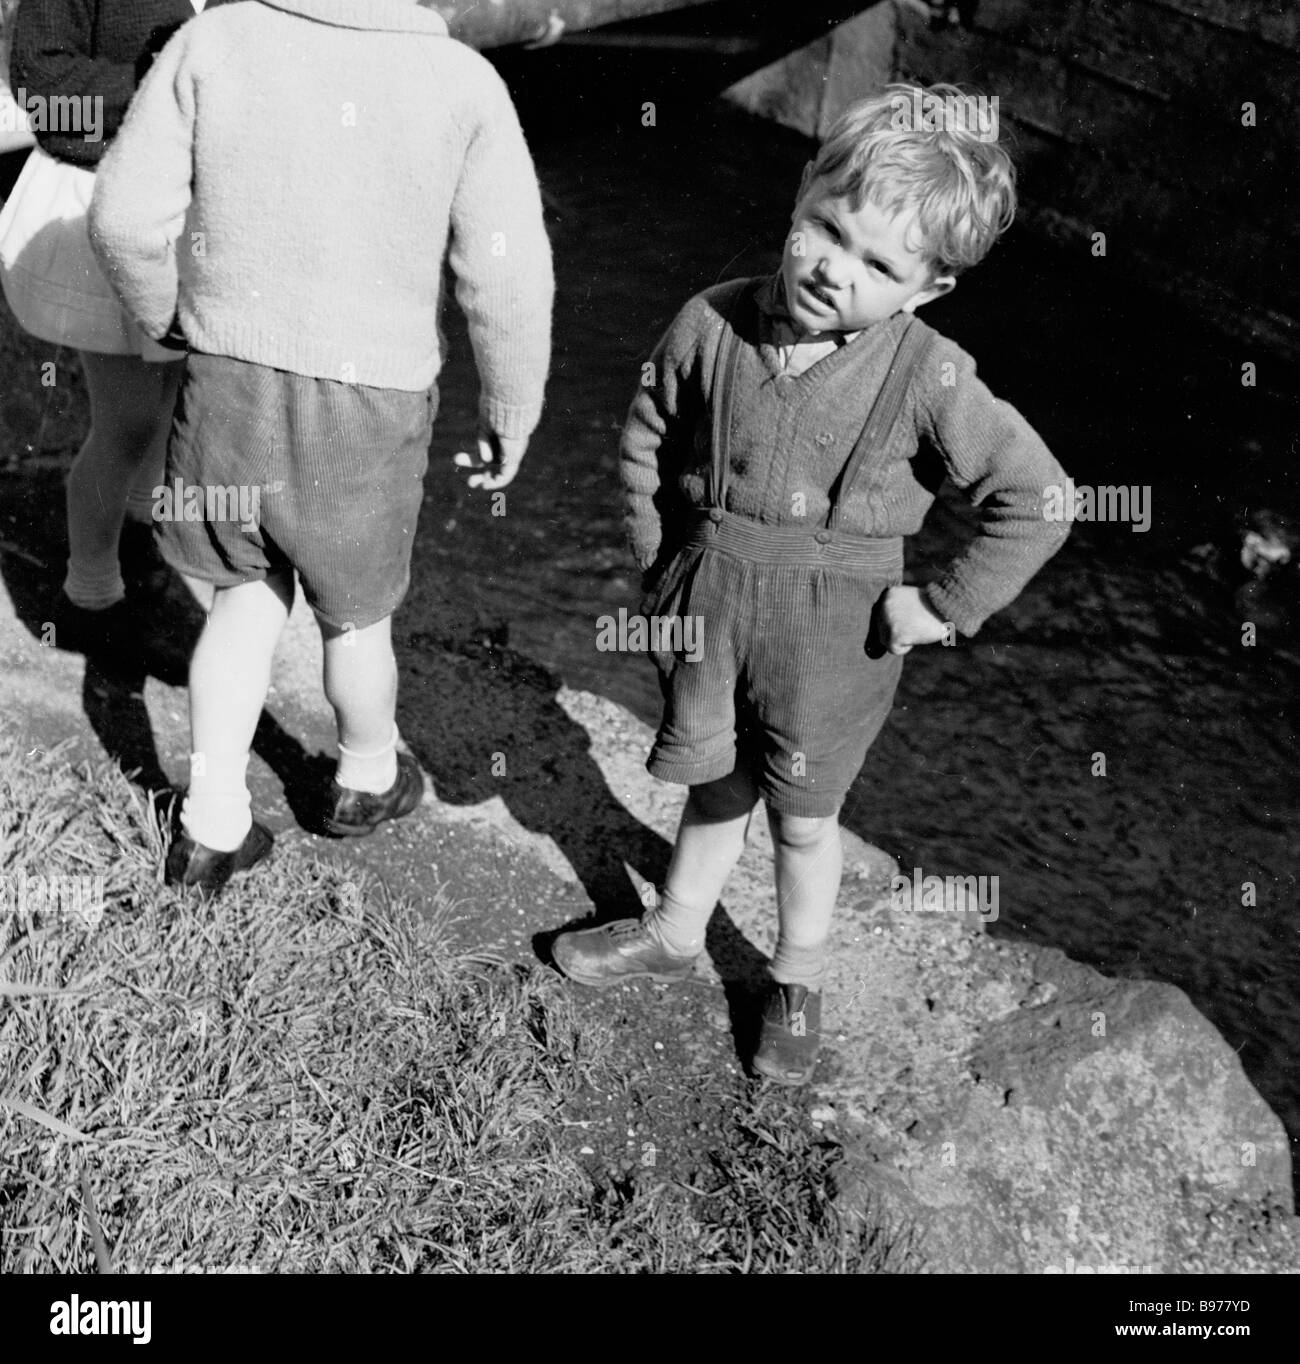 Little boy wearing shorts with braces hands on hips giants causeway northern ireland